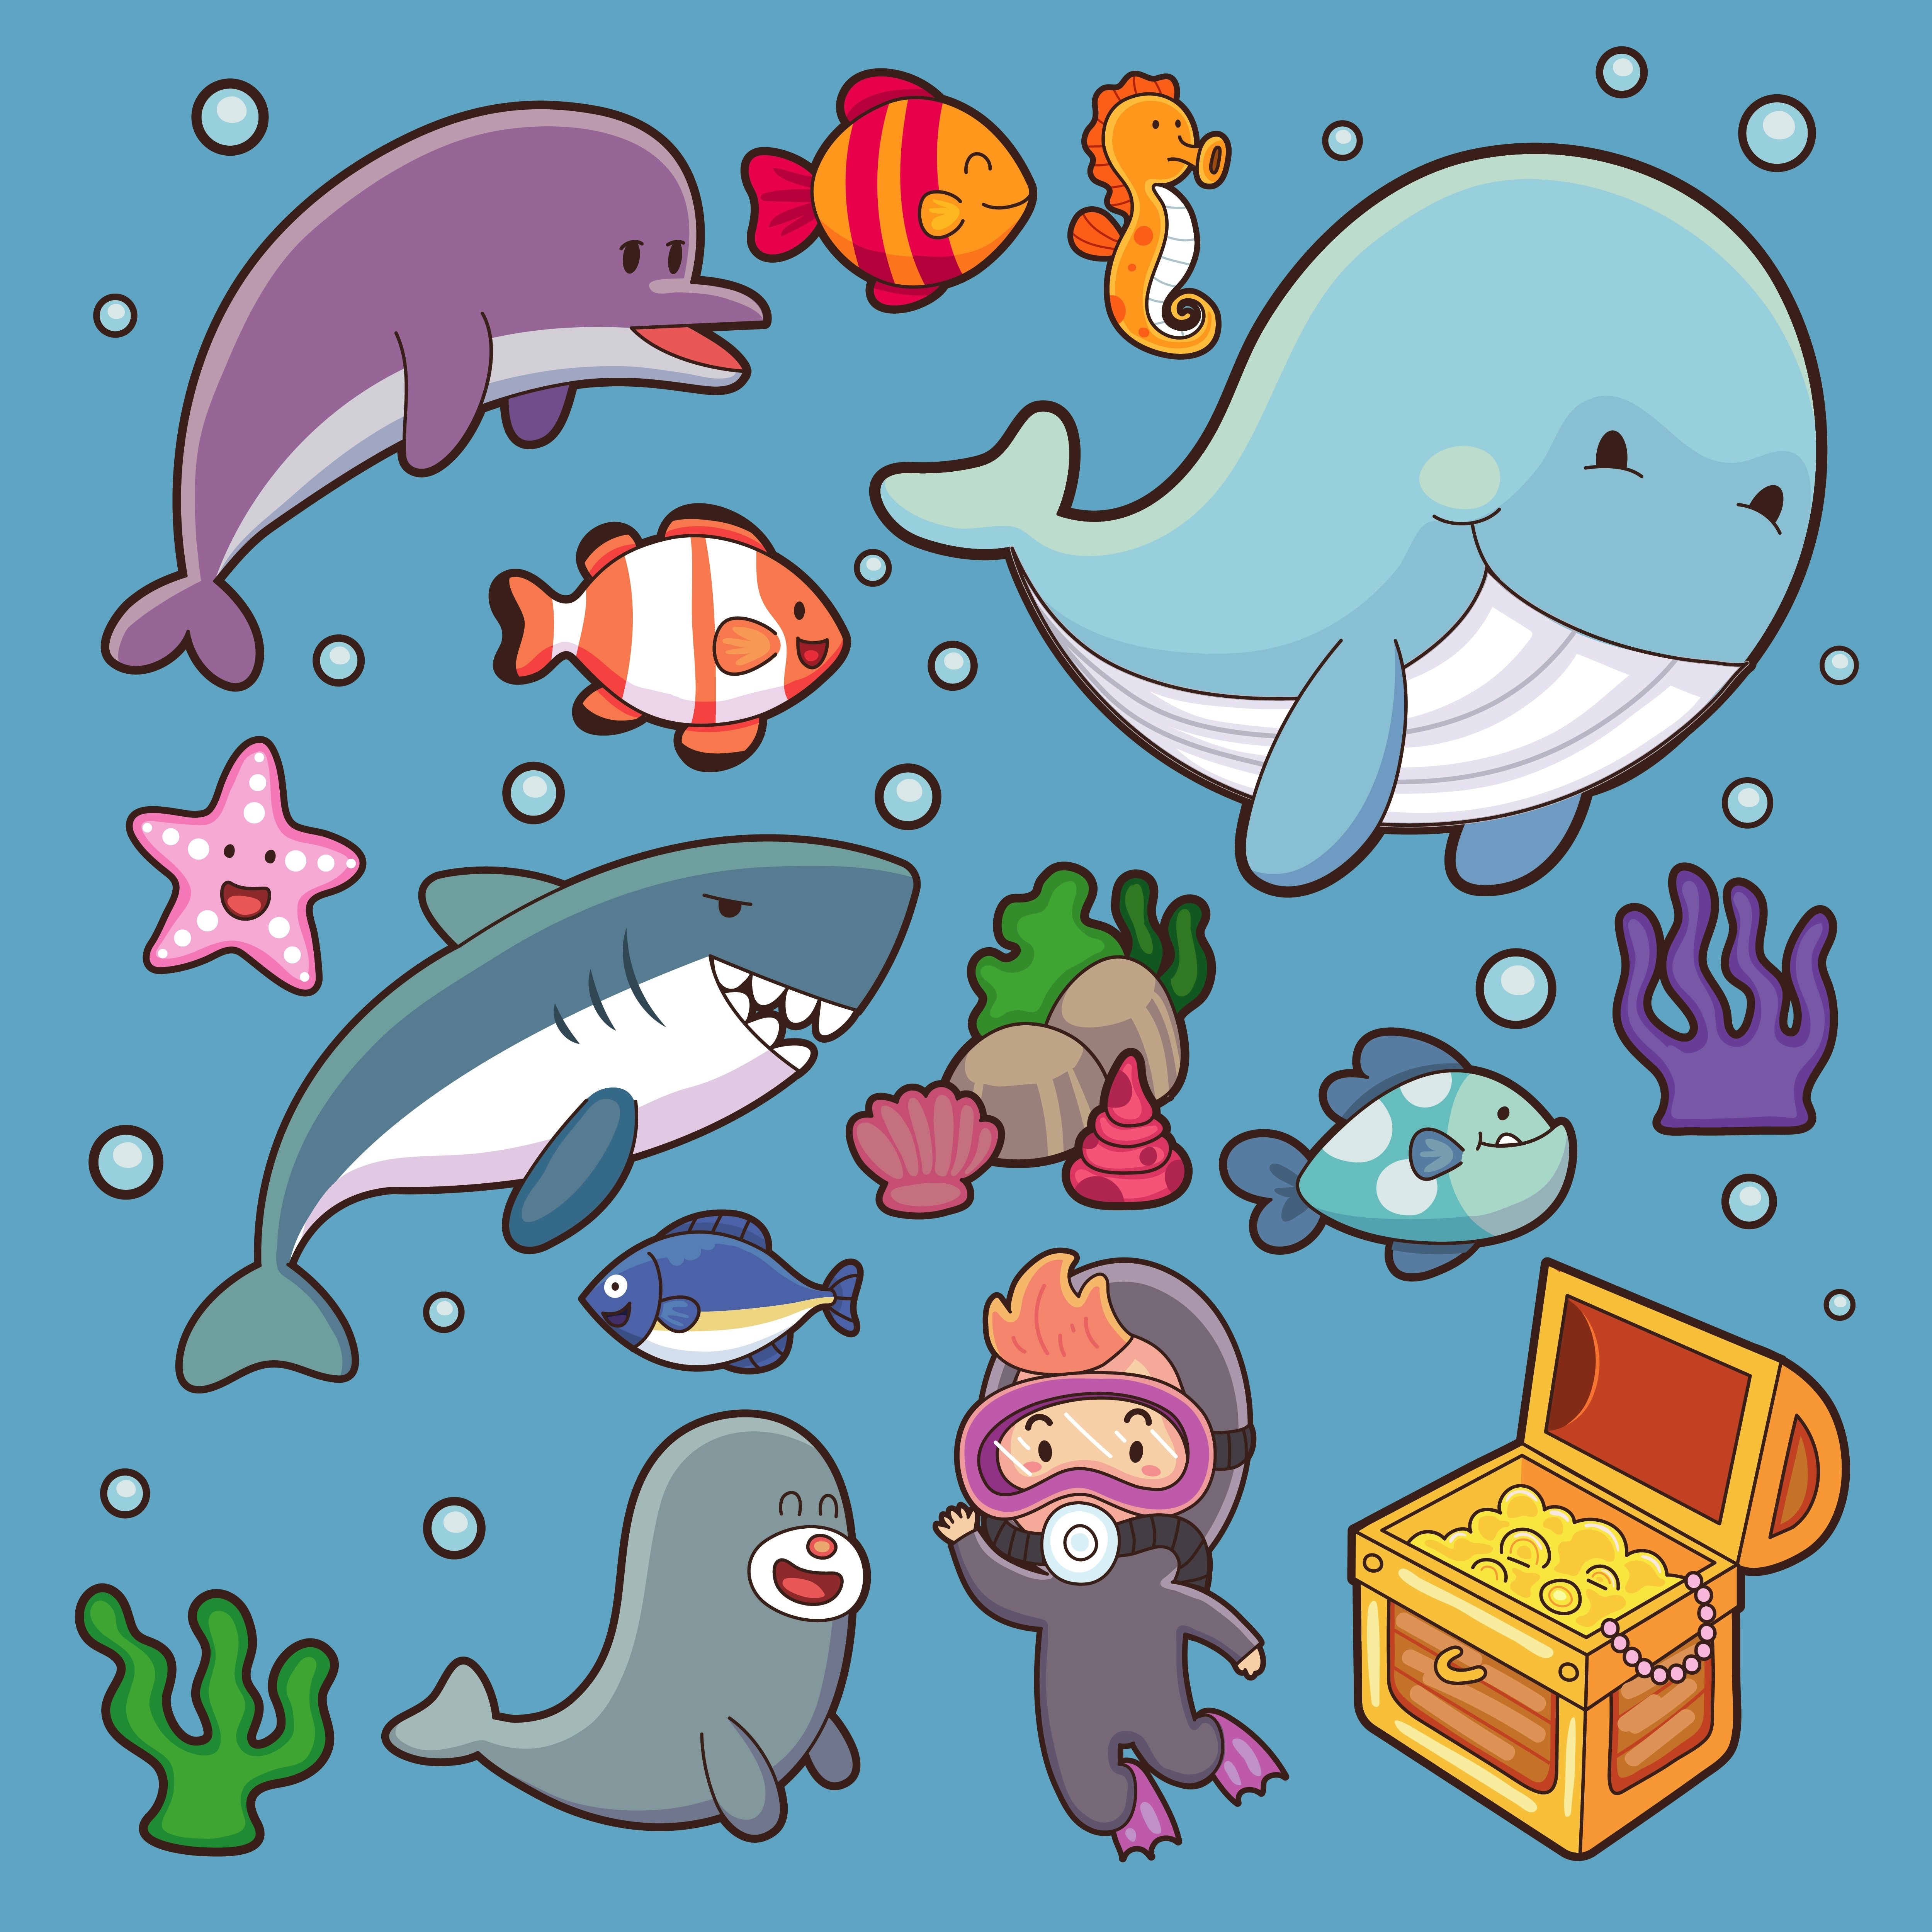 Sea Animals Vector Water Plants Ocean Fish Cartoon Illustration Undersea Water Marine Aquatic Character Life Underwater Wildlife Tropical Whale Turtle Dolphin Jellyfish Starfish Download Free Vectors Clipart Graphics Vector Art